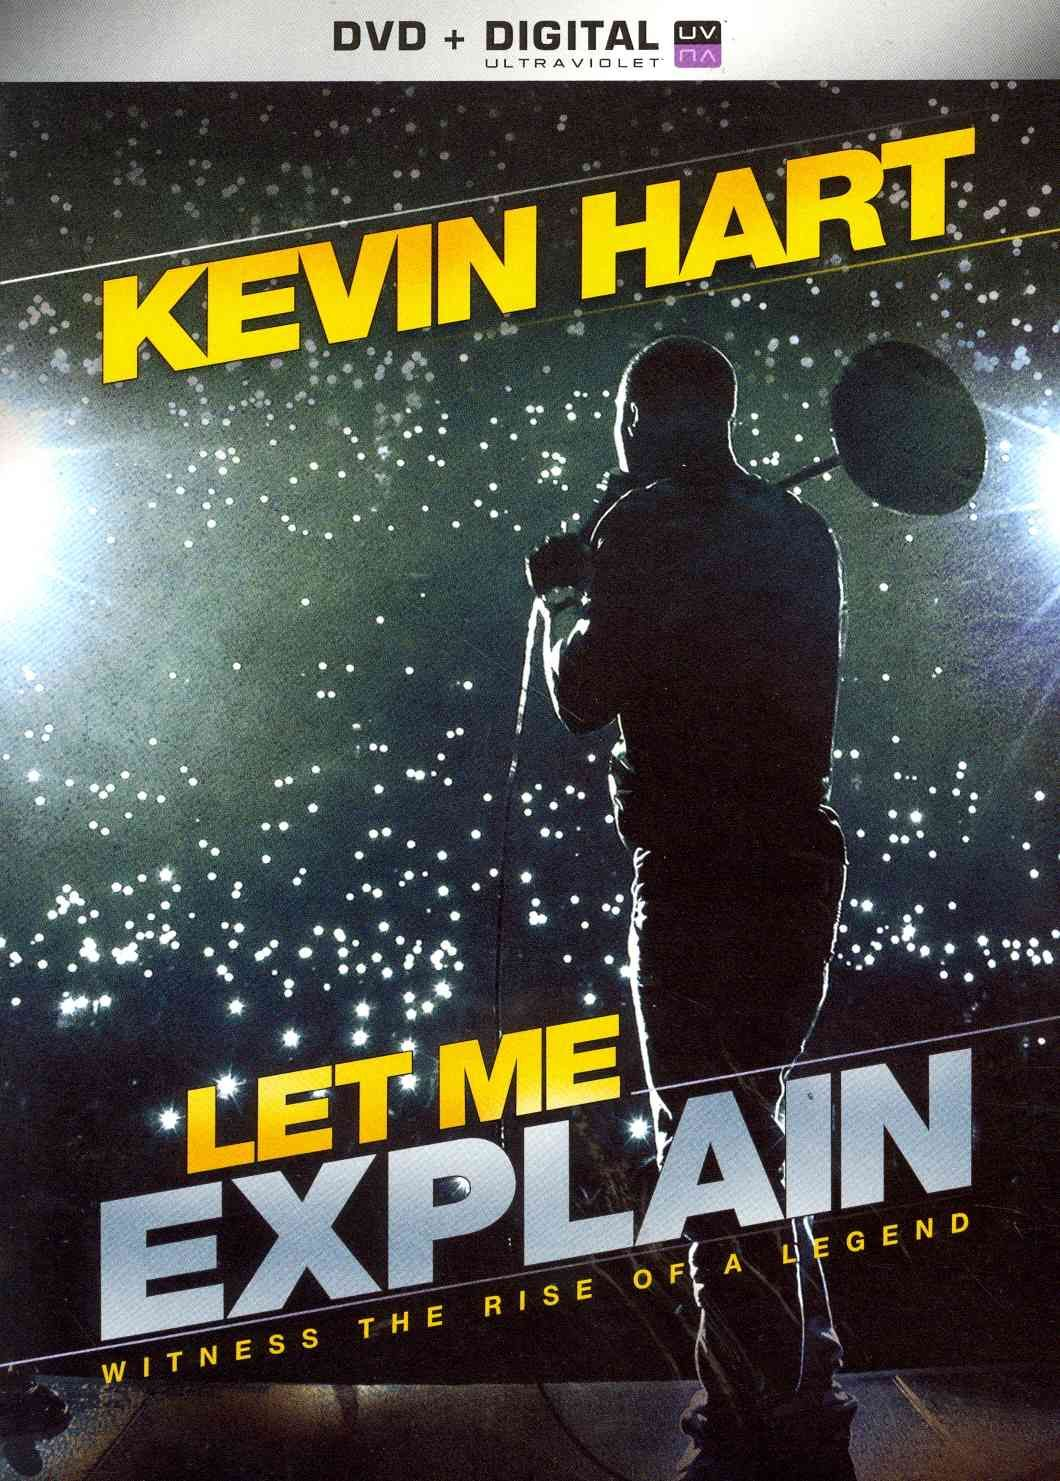 Kevin Hart Let Me Explain Dvd Overstock Com Shopping The Best Deals On Musicals Performing Arts Kevin Hart Movies To Watch Stand Up Comedy Shows